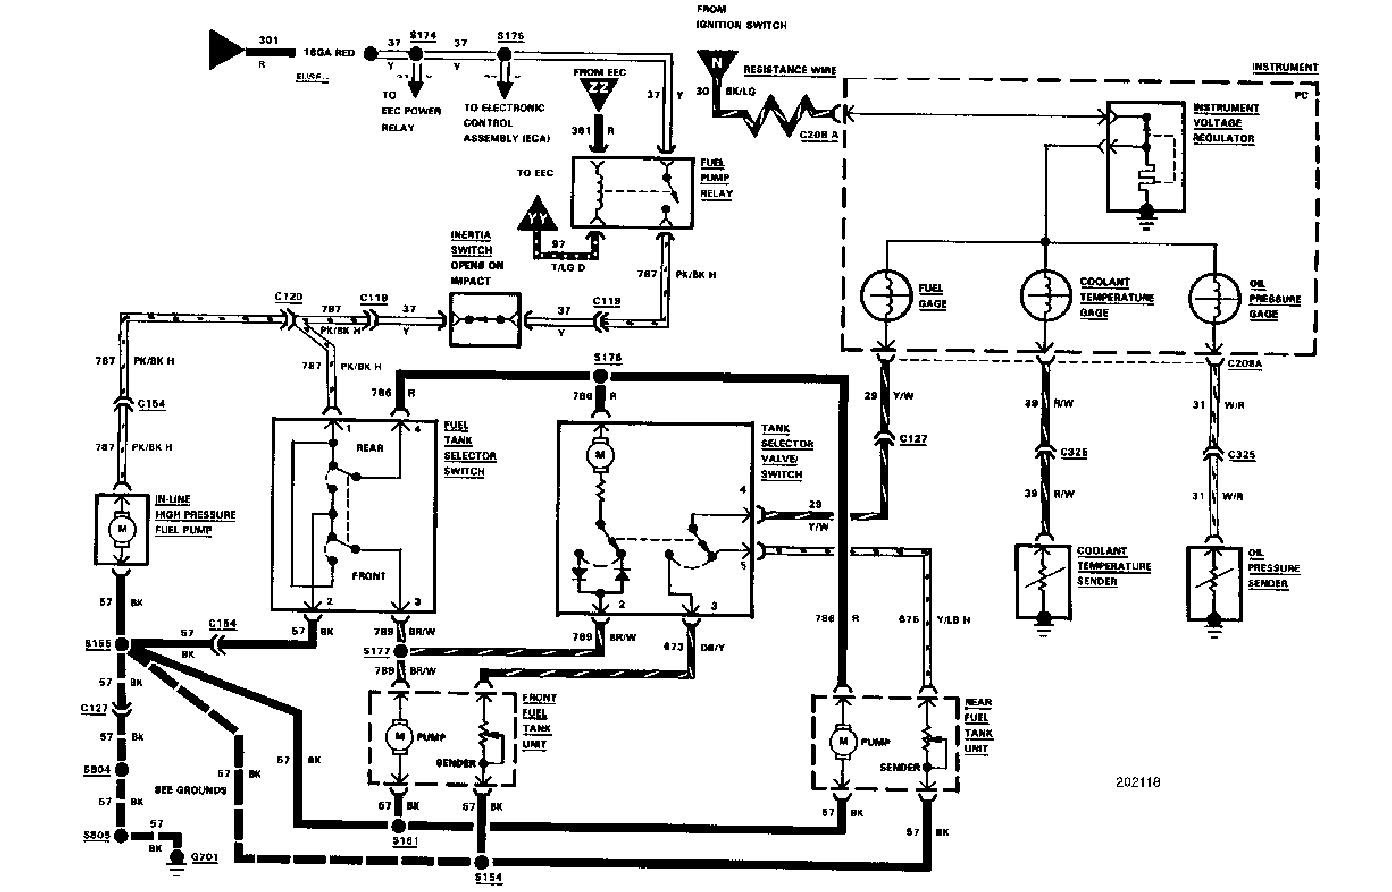 1988 Ford F250 Wiring Diagram from lh4.googleusercontent.com